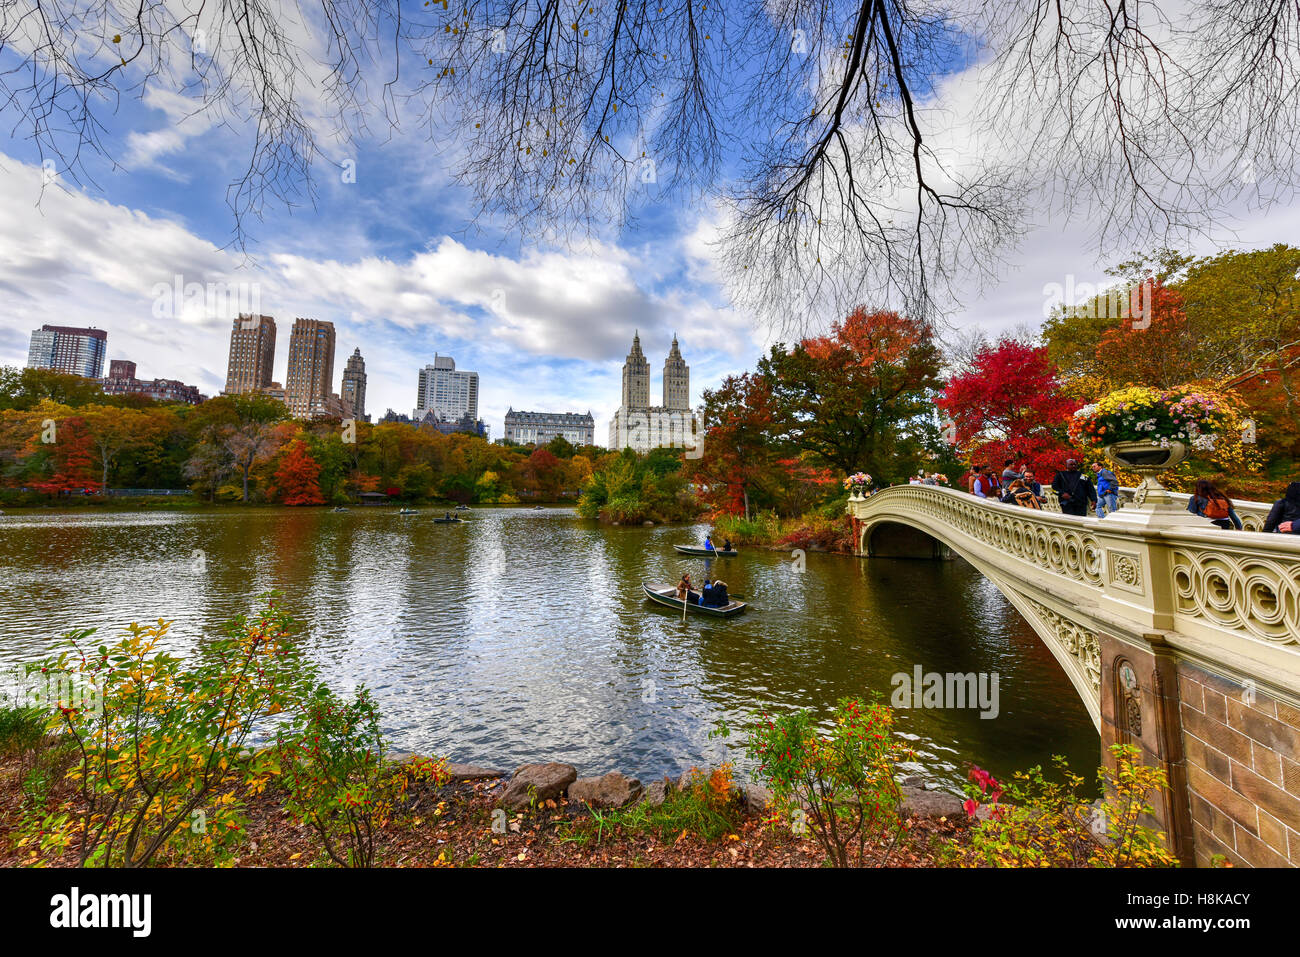 Bow Bridge in the autumn in Central Park, New York City. - Stock Image